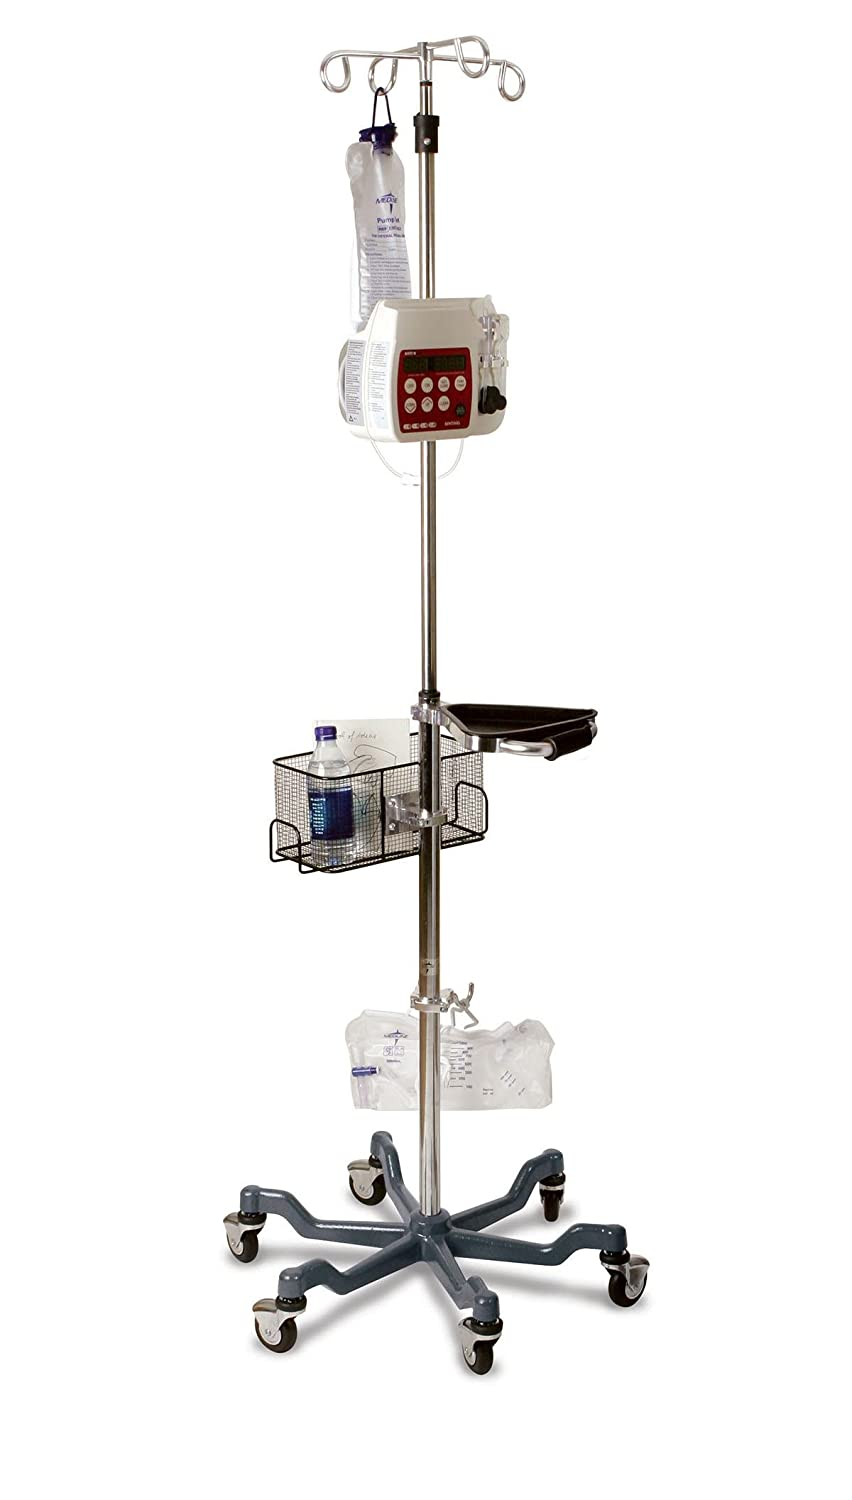 Medline MDS80600GRY Six Leg Max 66% OFF Heavy Duty Quick Overseas parallel import regular item Pole with IV Stand